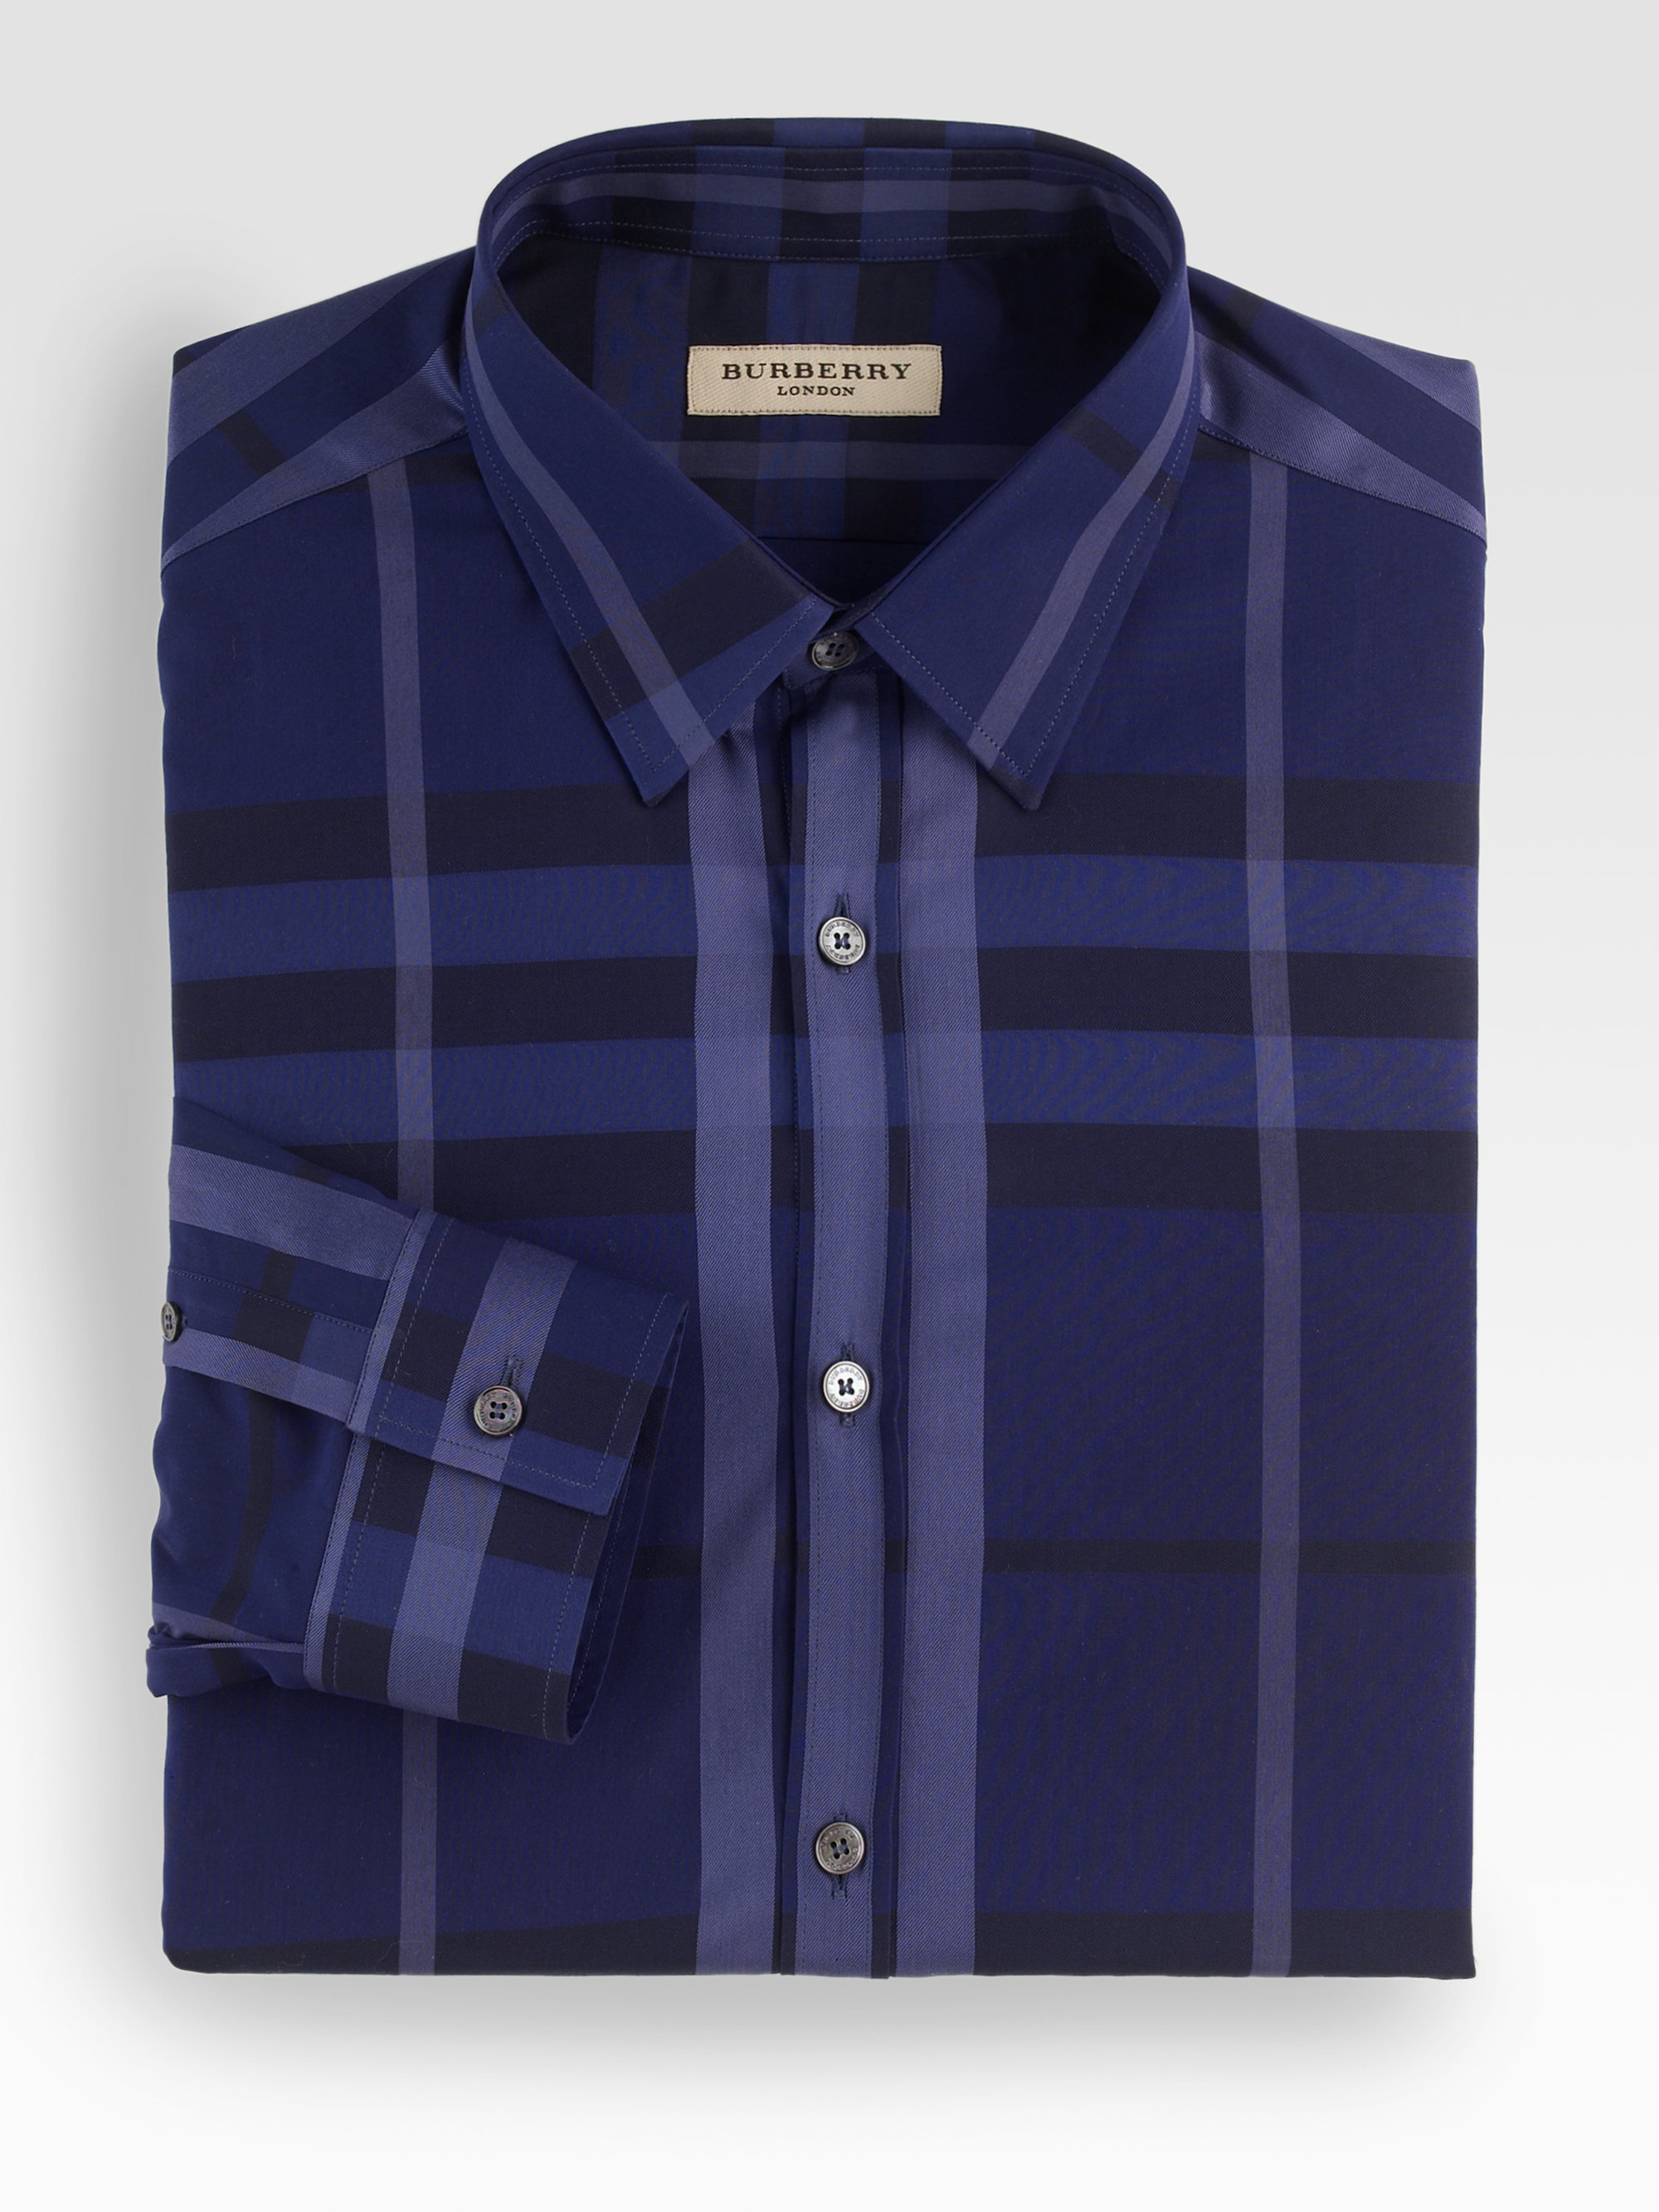 Burberry Upbeat Check Dress Shirt In Blue For Men